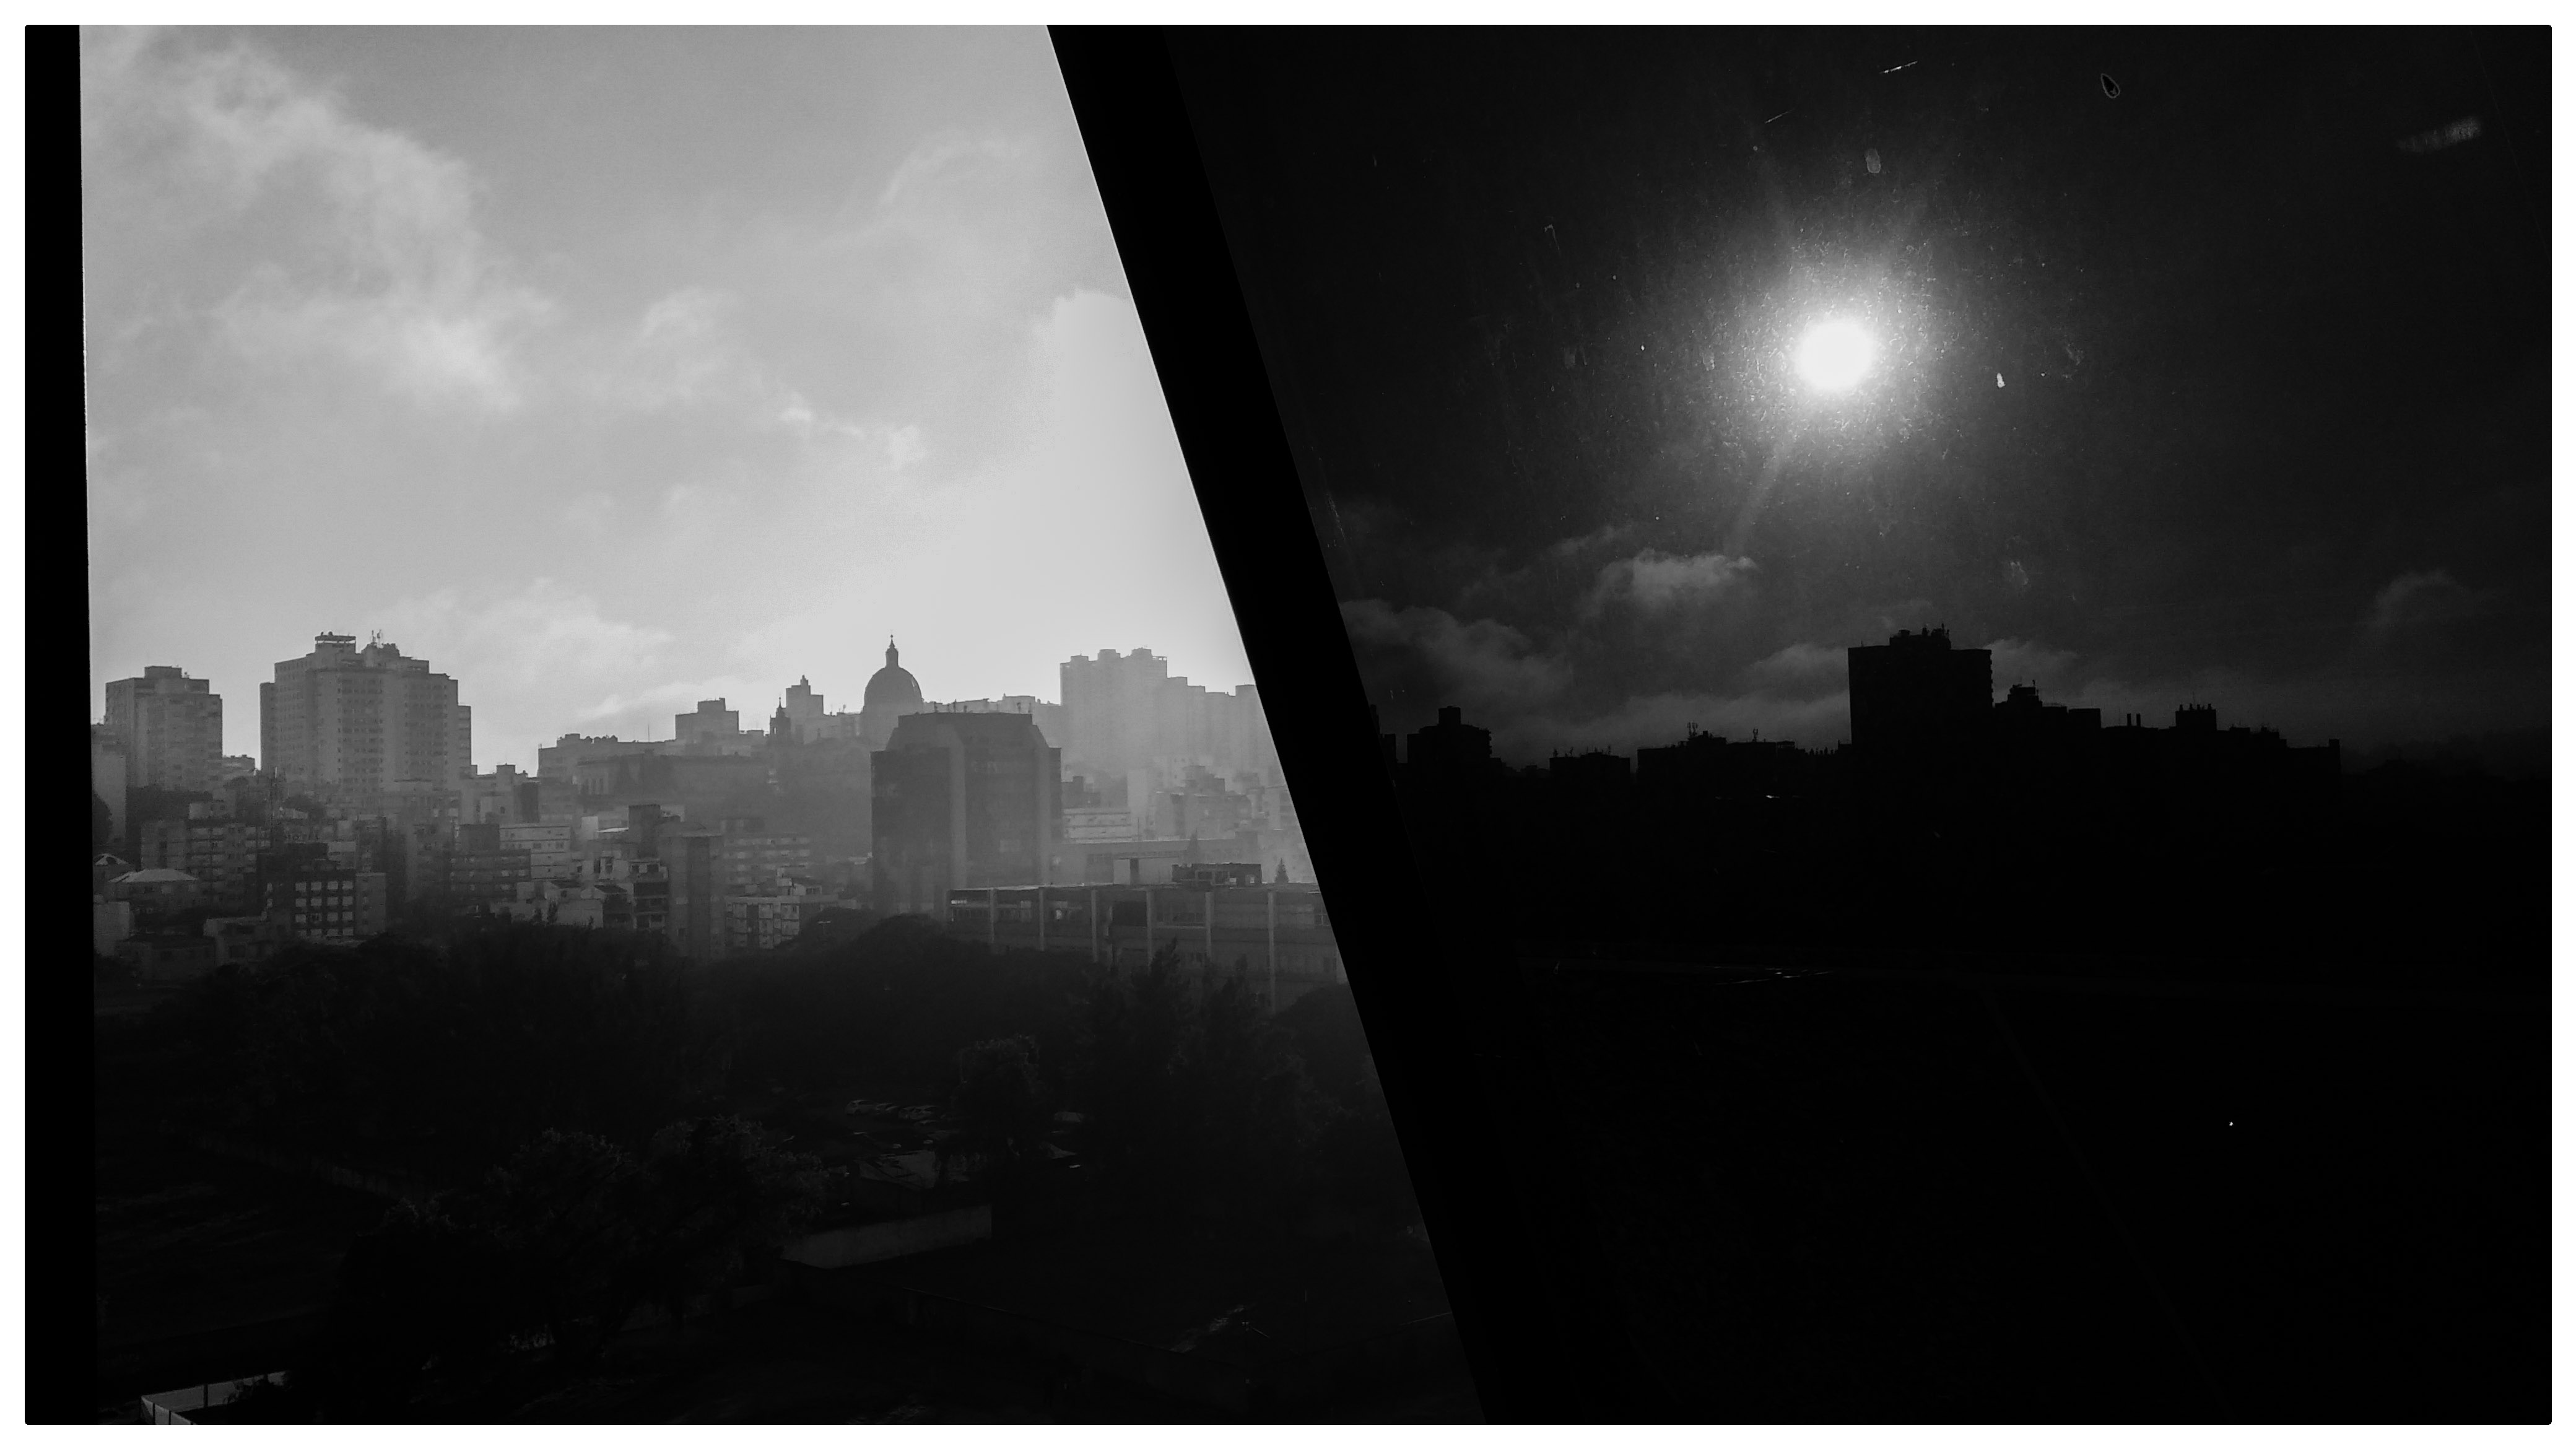 A morning of moonlight, Blackandwhite, B&w, Cityscape, Day, HQ Photo